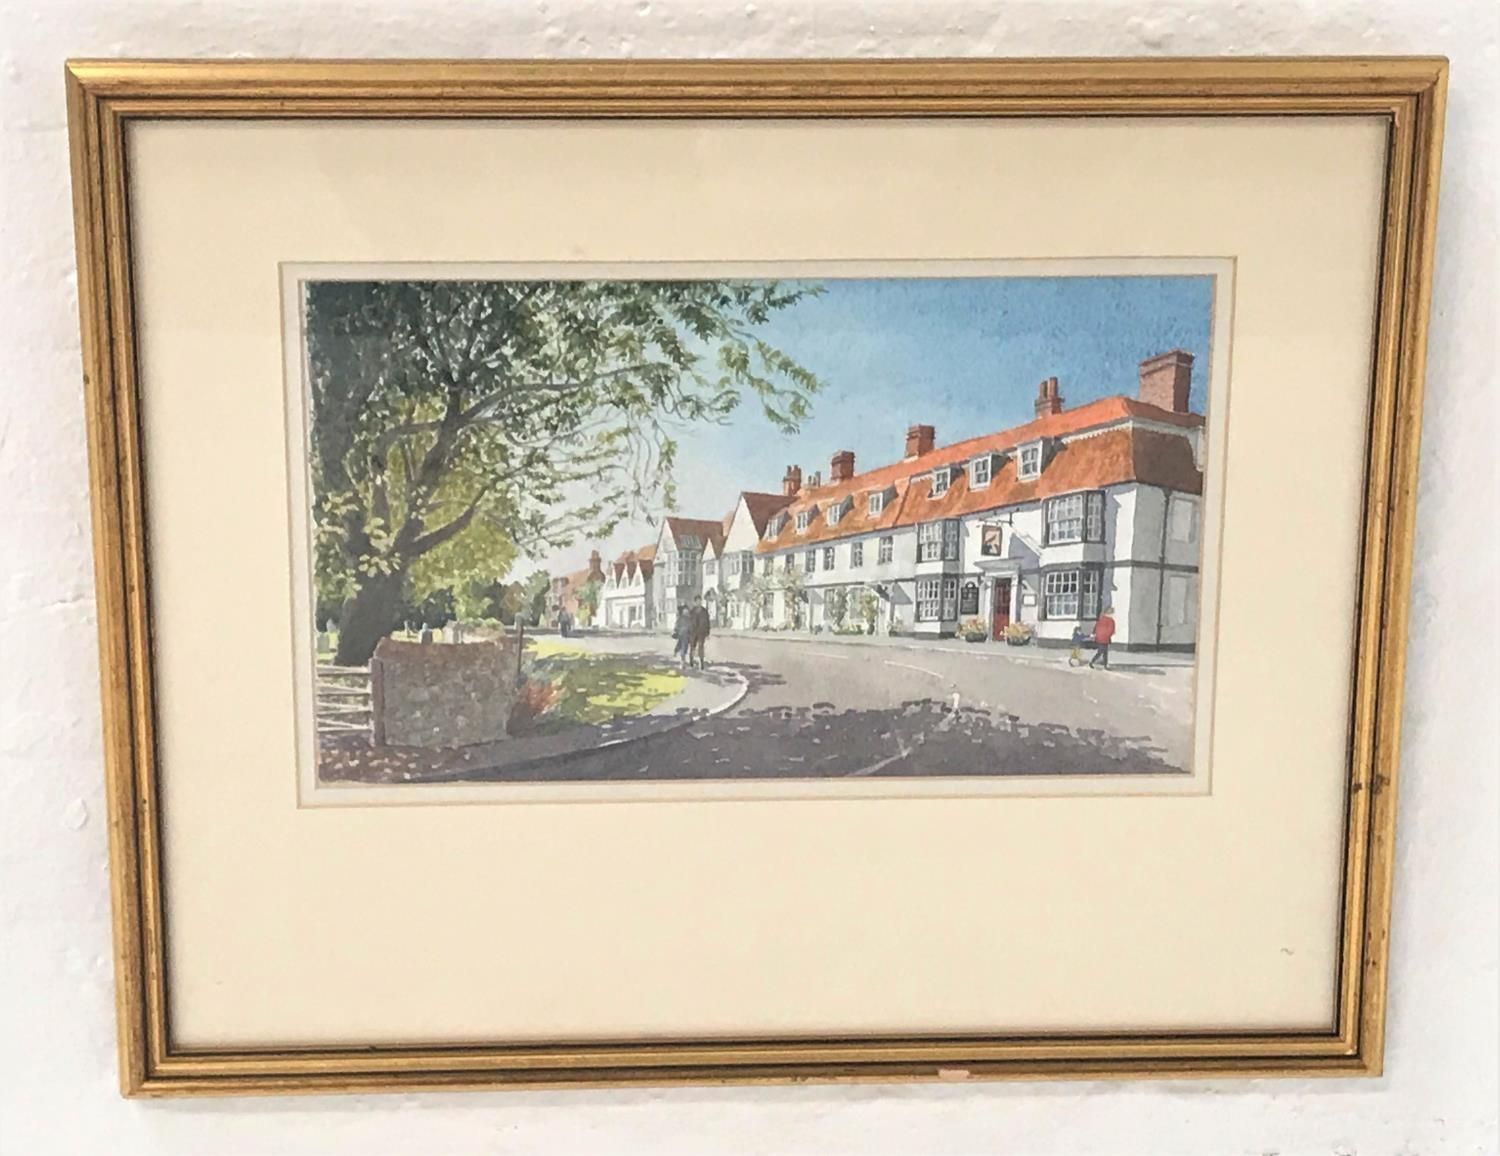 Lot 390 - TONY GOUGH Winchelsea - East Sussex, watercolour, signed and dated 1994, with label to verso, 21.5cm